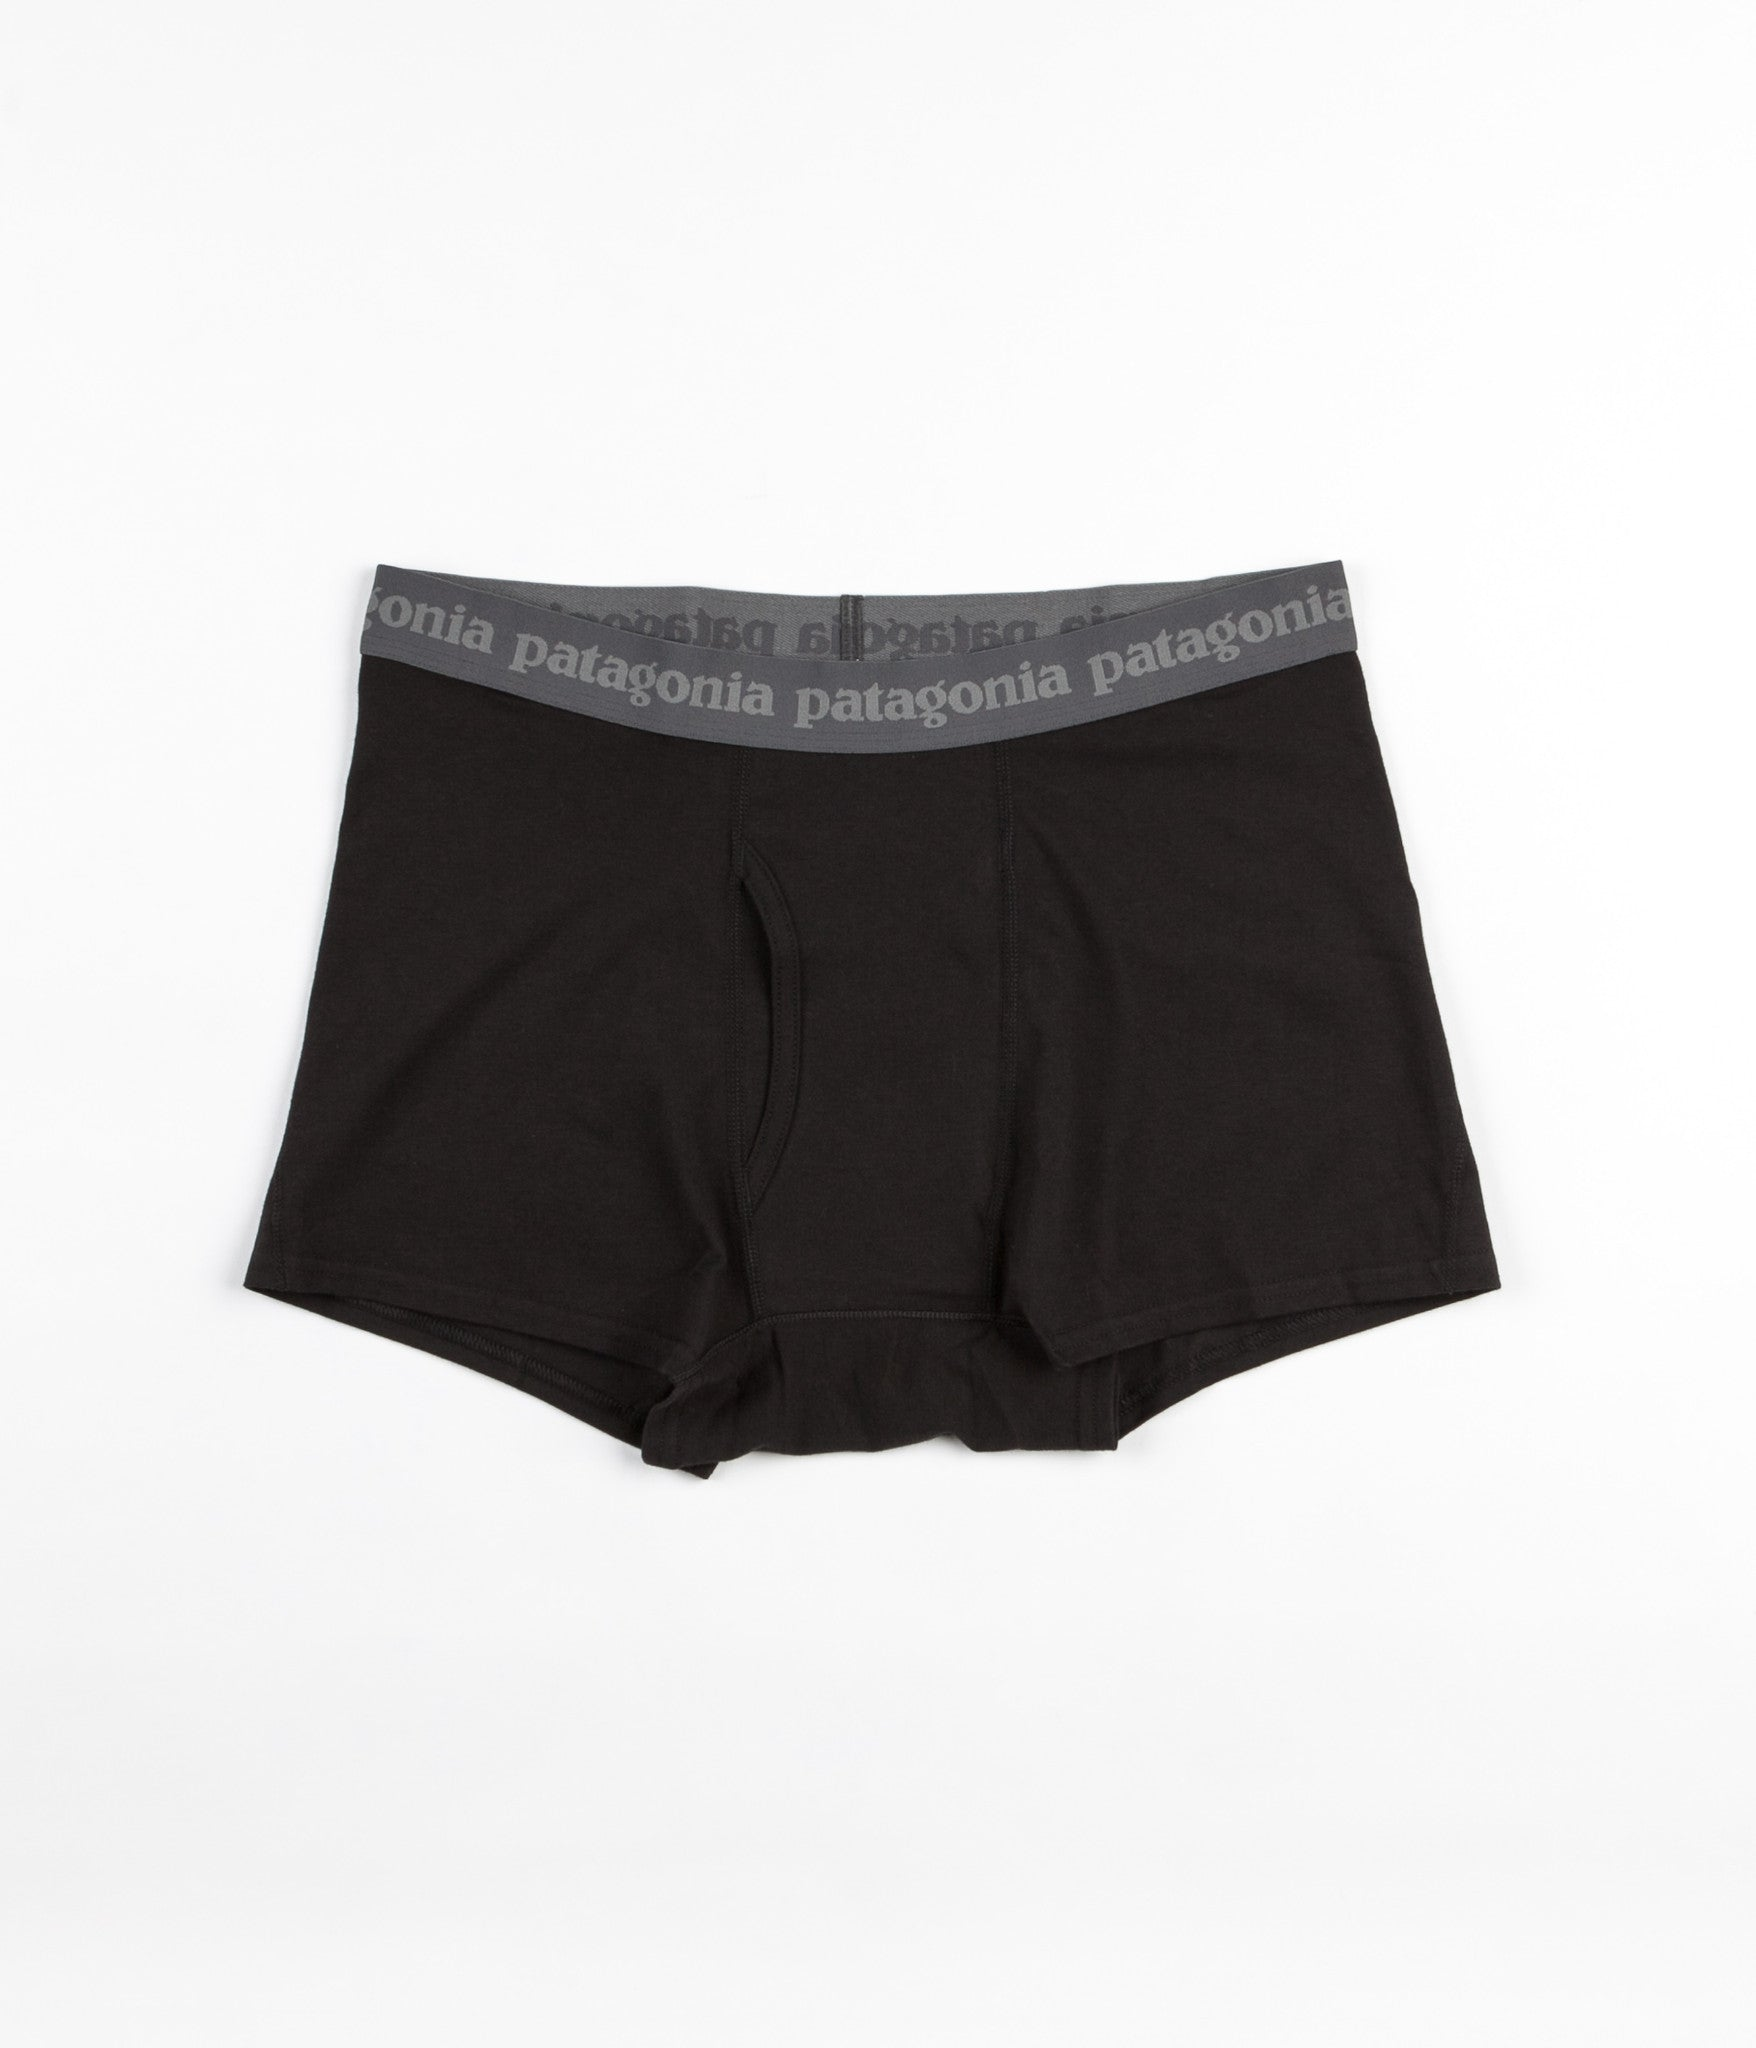 Patagonia Everyday Boxer Briefs - Black